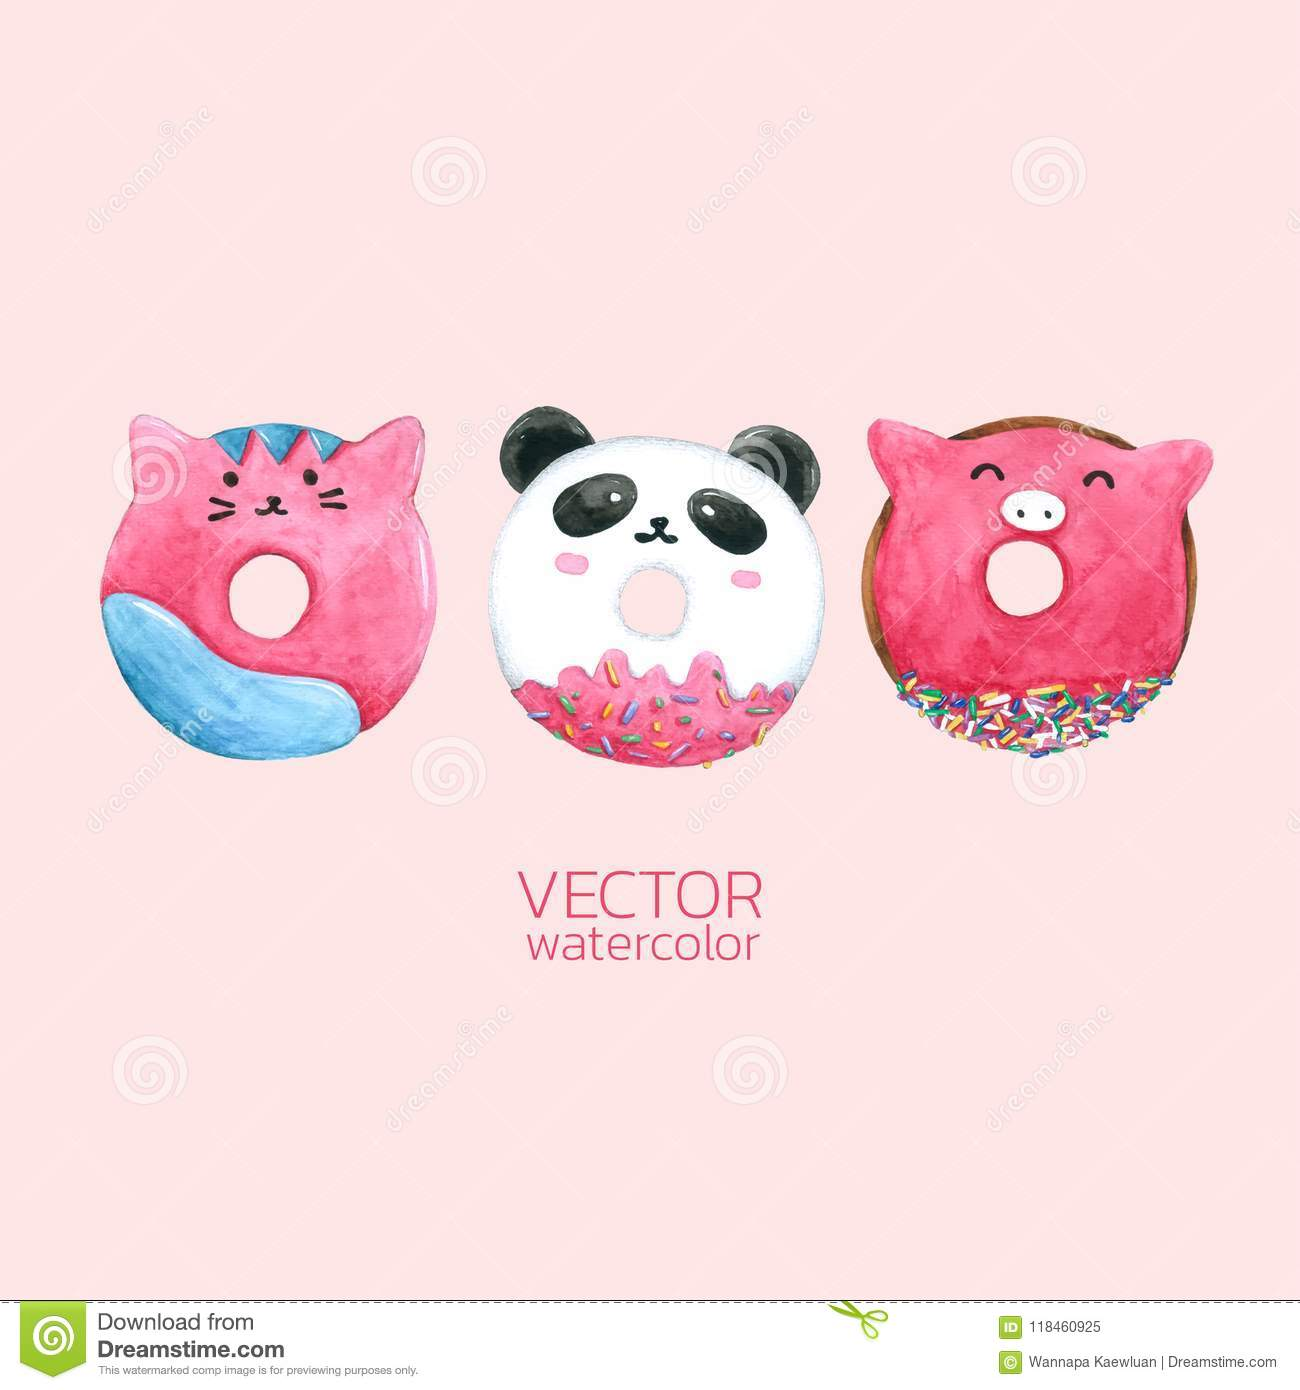 Donuts Cute. Vector watercolor, Hand drawn for Greeting Card, Packaging , Bakery Shop and more